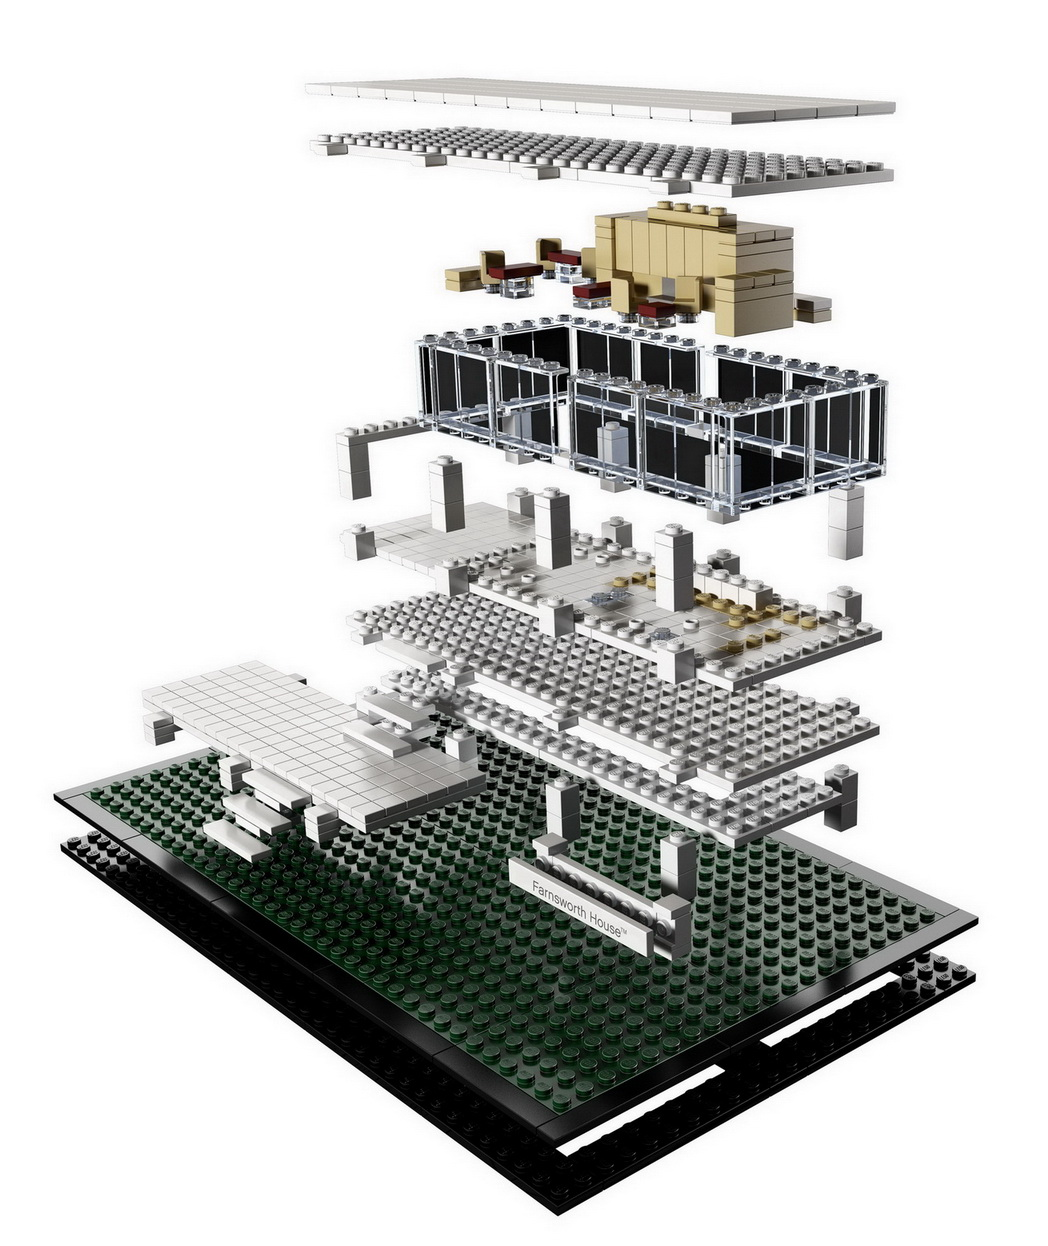 Architecture diagrams galleries lego architecture for Architecture lego